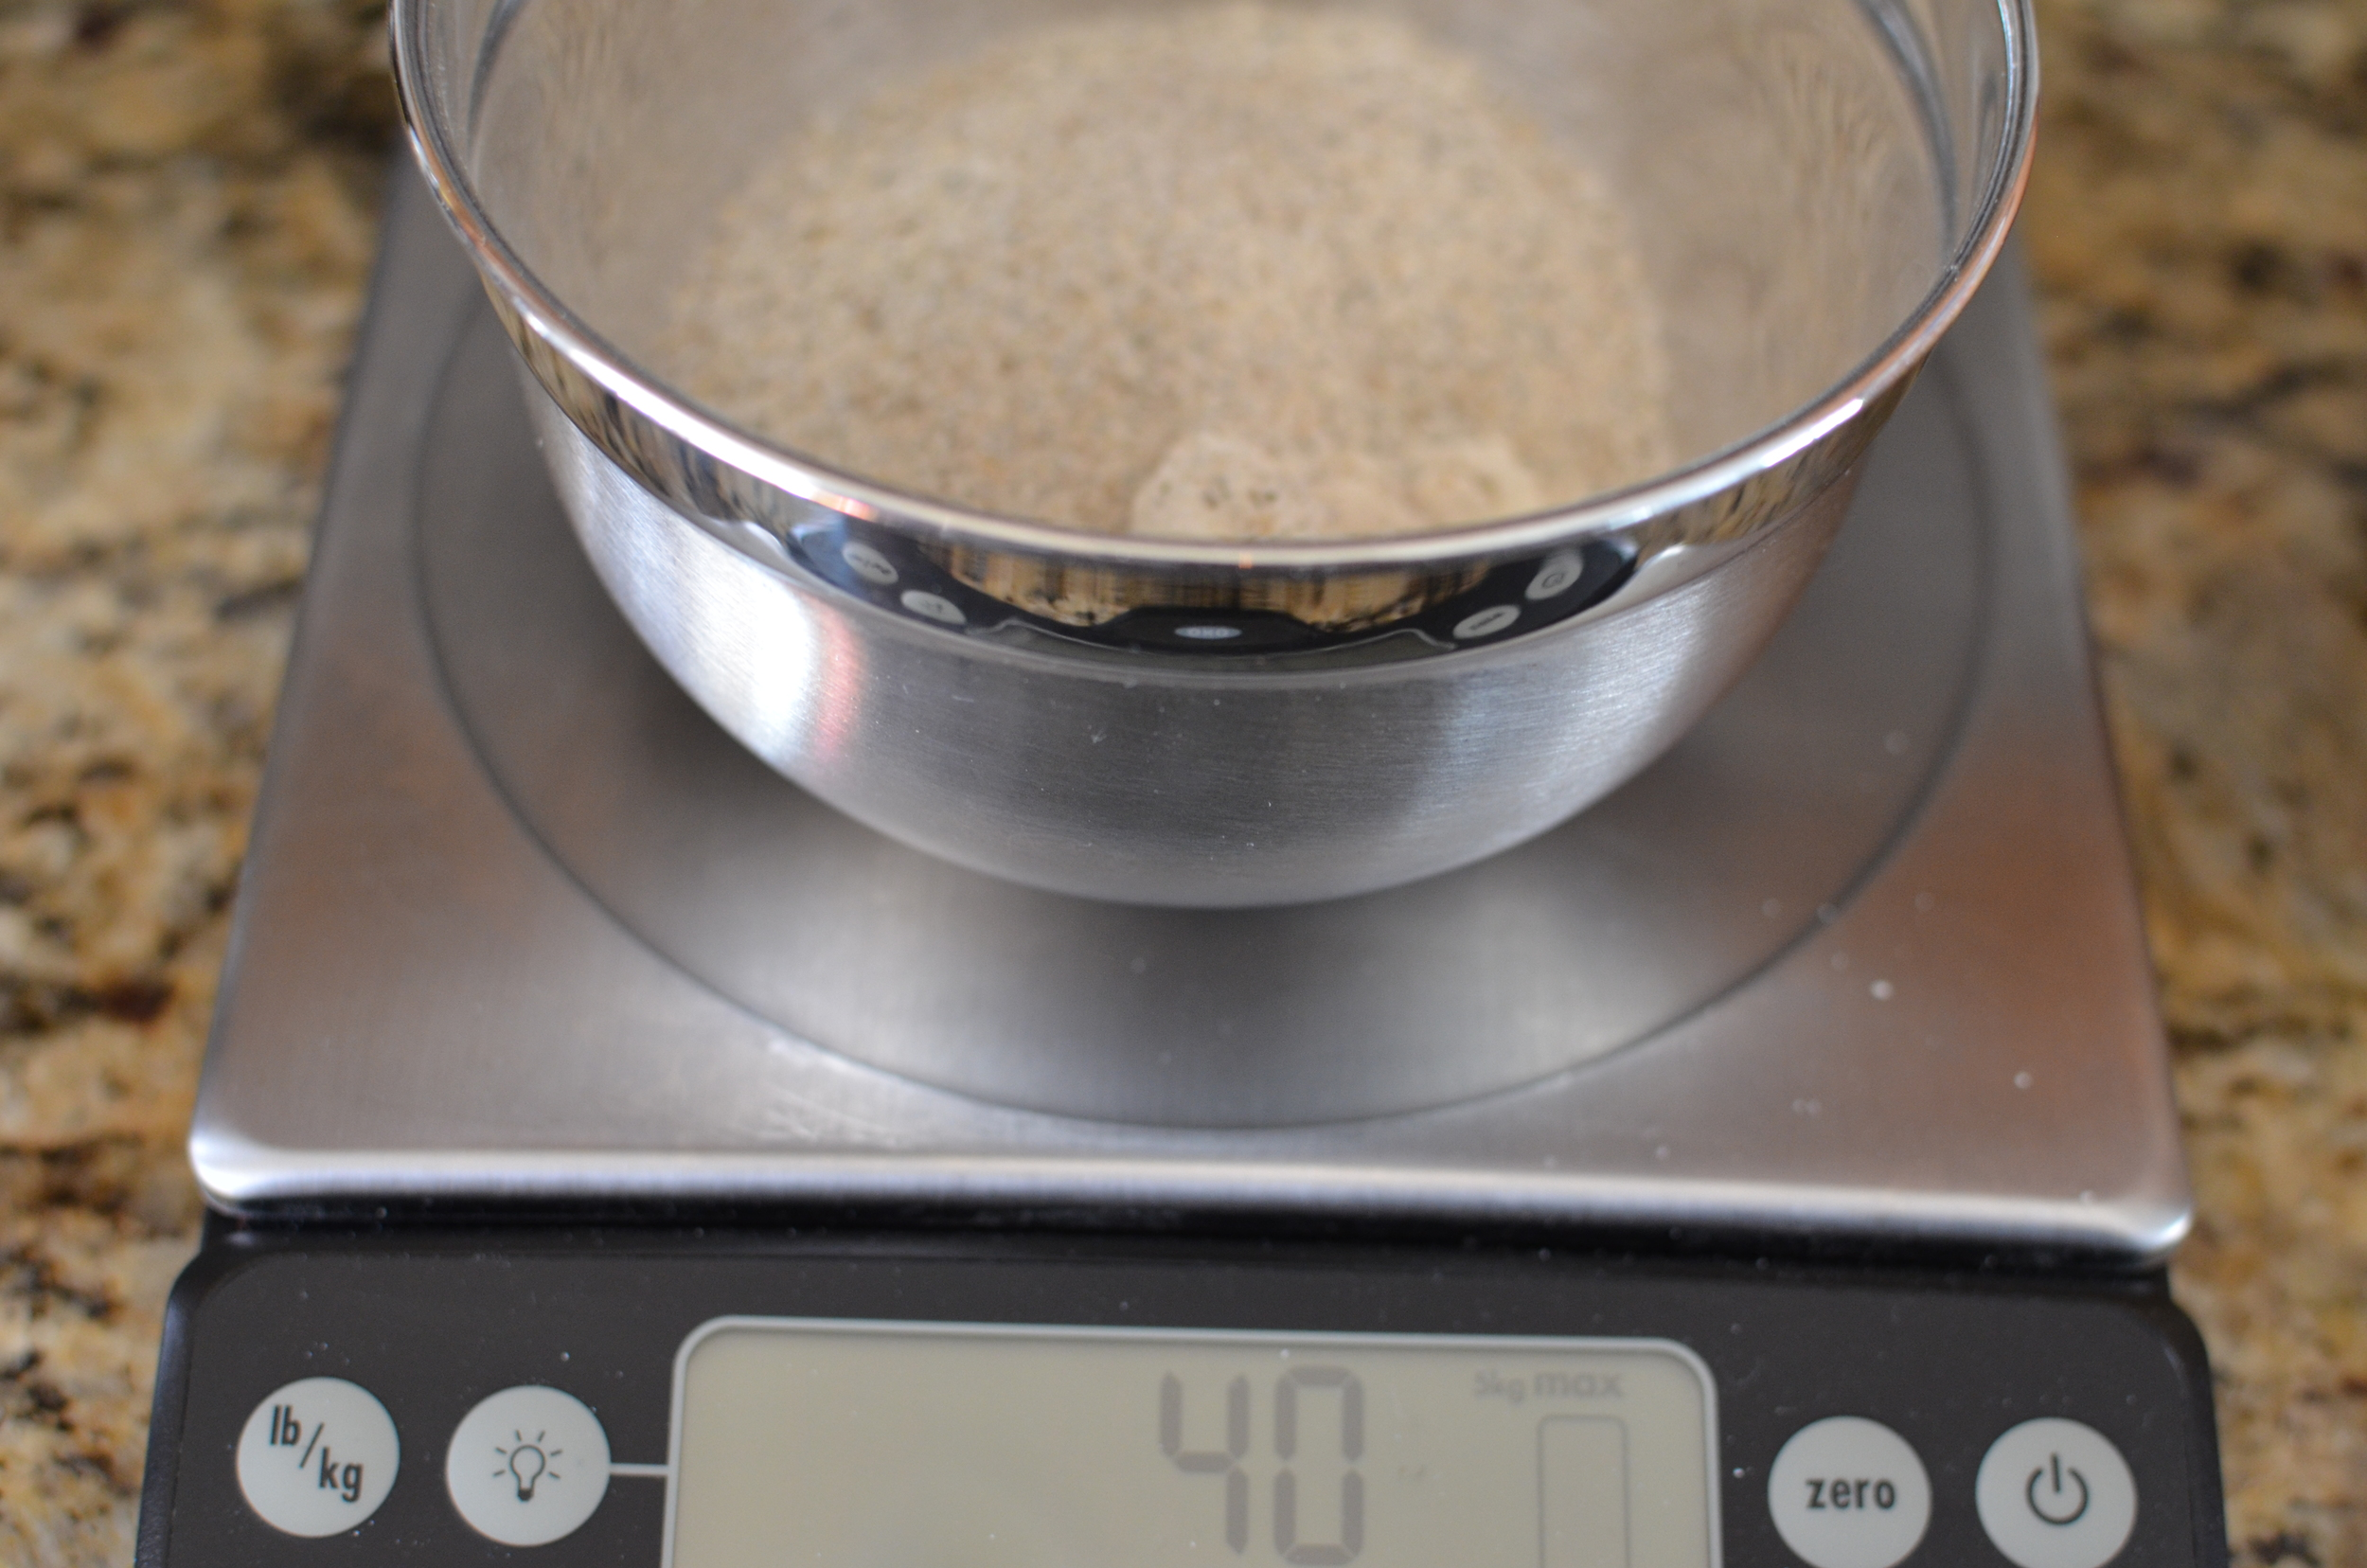 Okay, this recipe begins with a biga made with both flours.